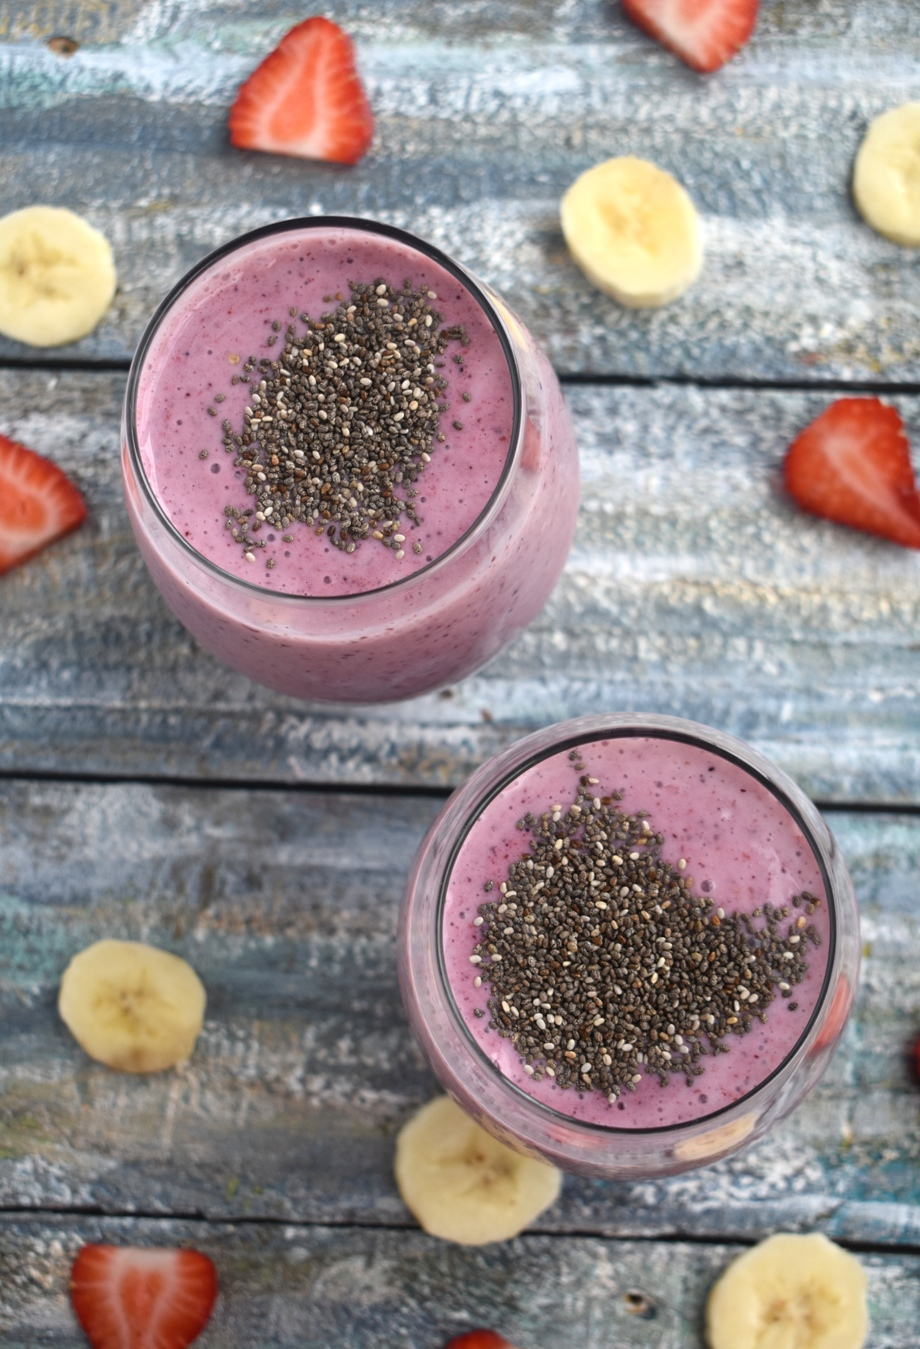 Pregnancy Superfood Smoothie is loaded with nutrients for a healthy mom and baby including berries, banana, Greek yogurt, chia seeds and peanut butter. www.nutritionistreviews.com